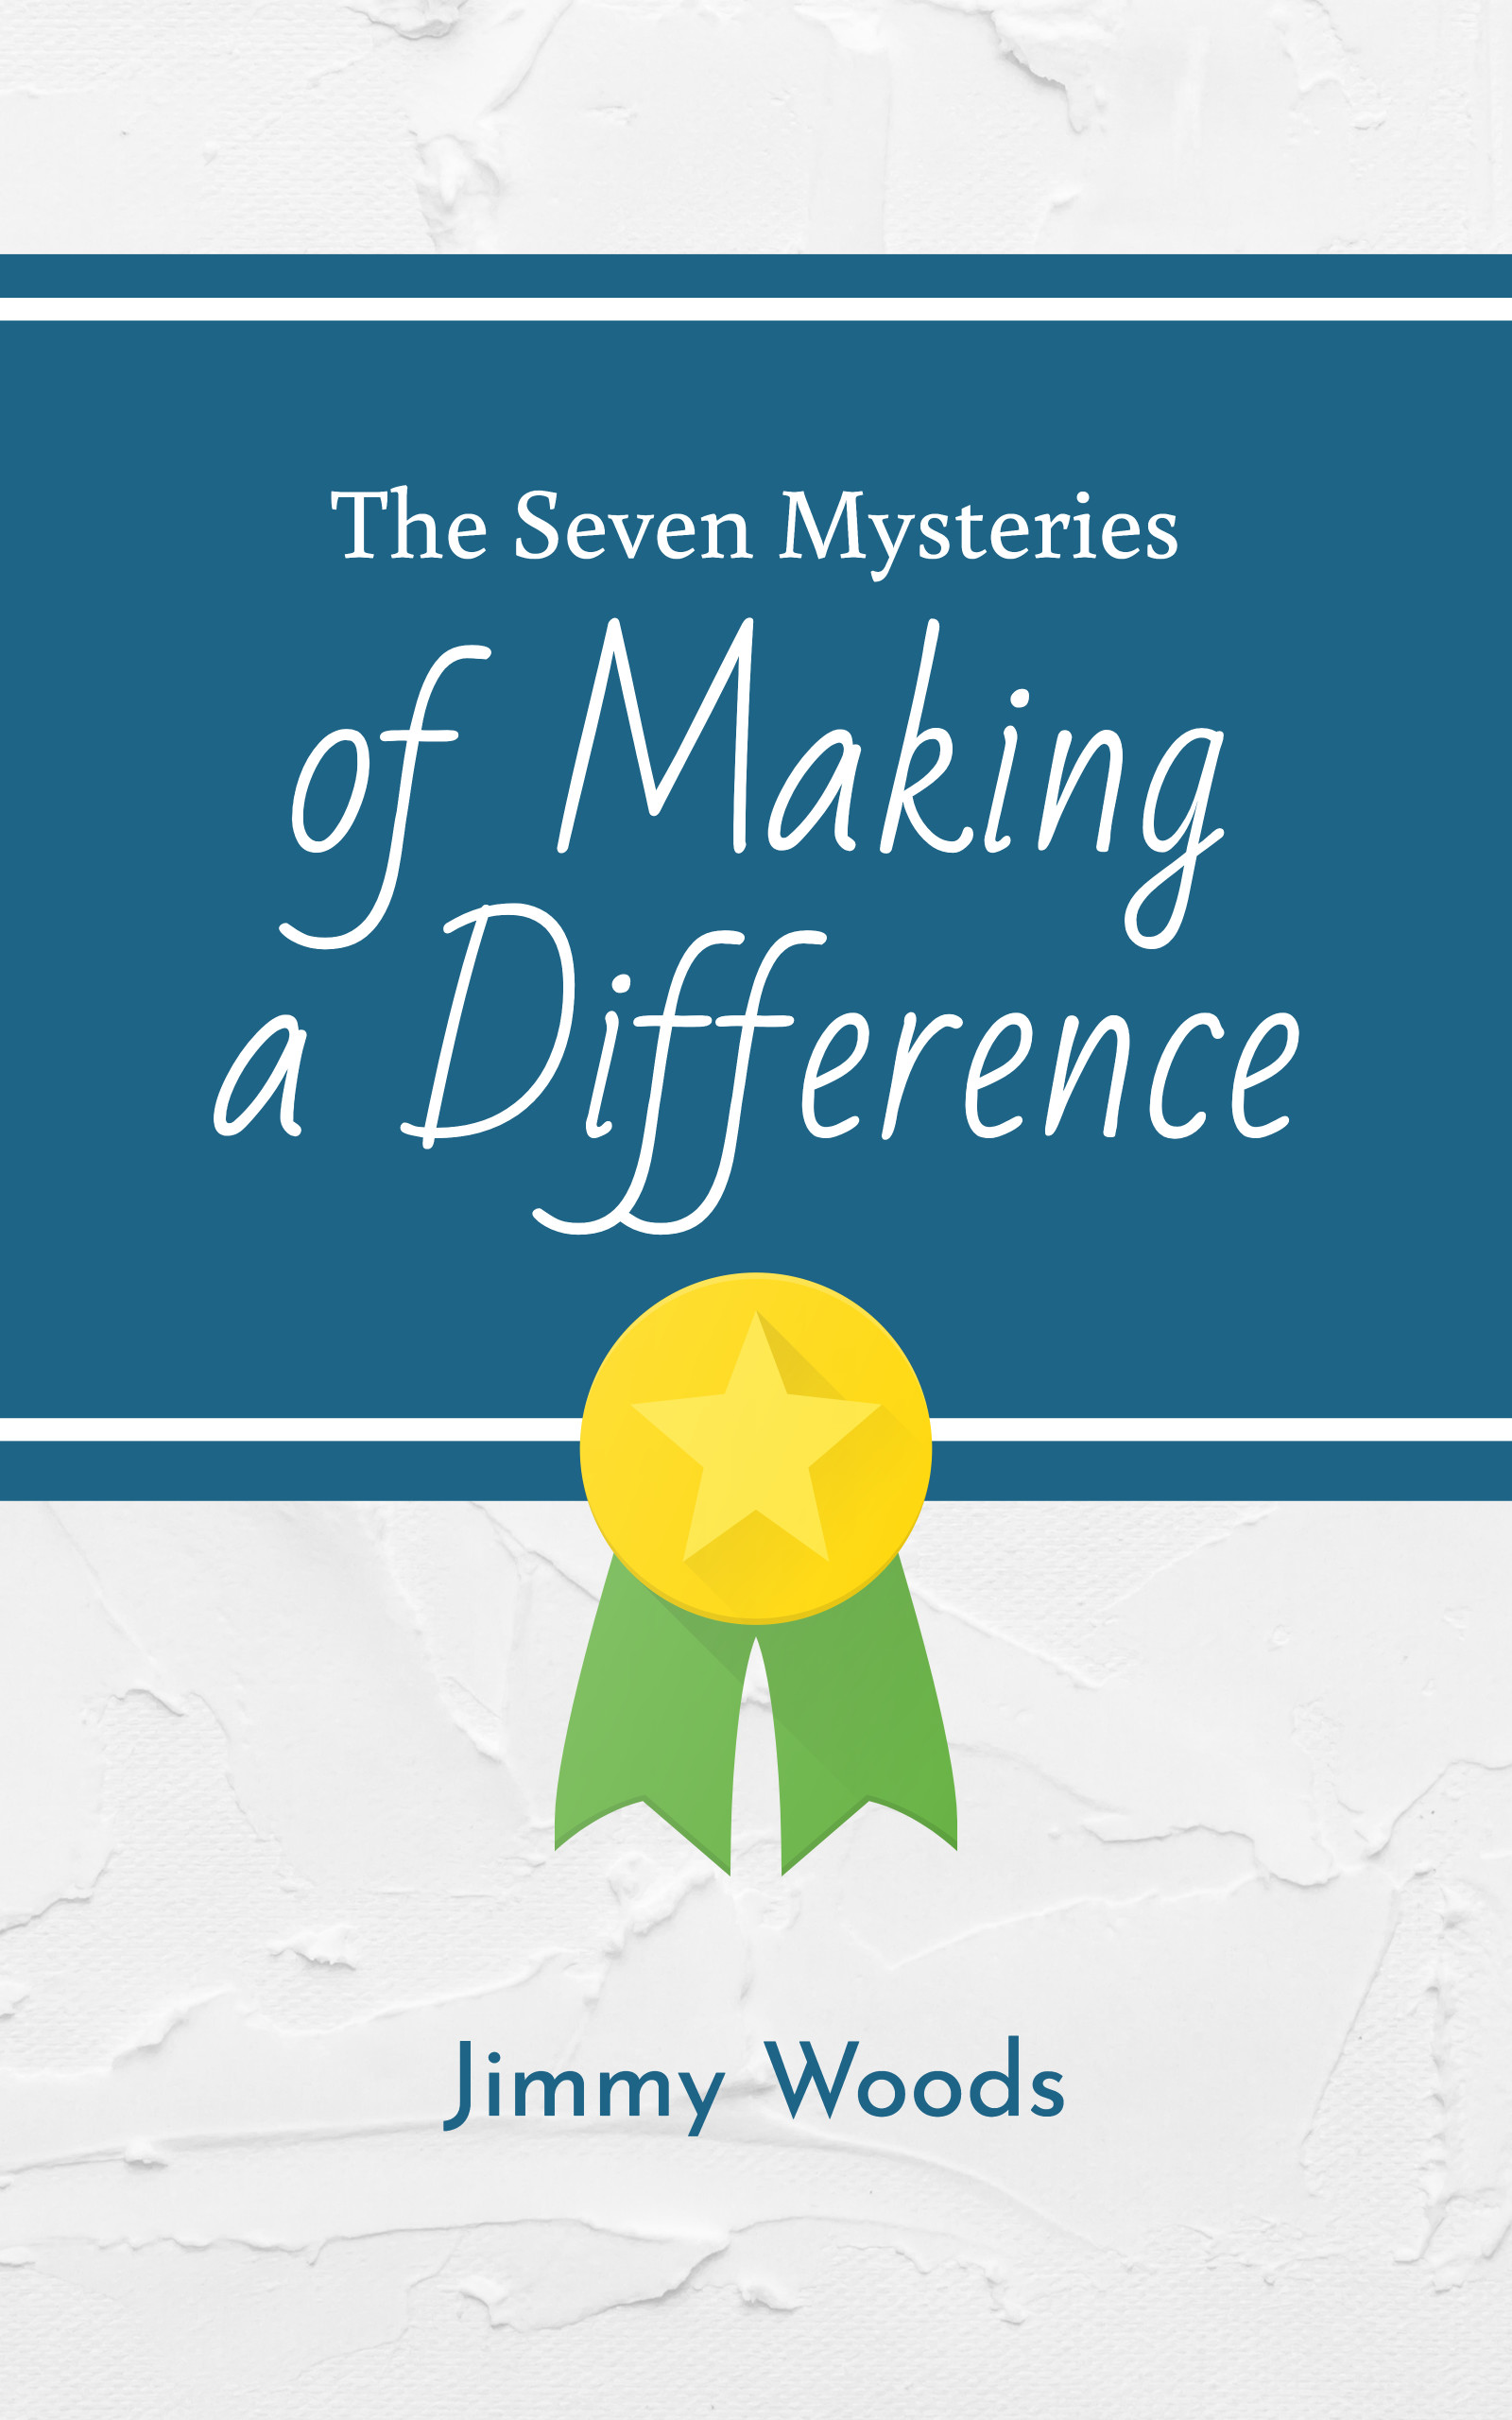 The Seven Mysteries of Making a Difference